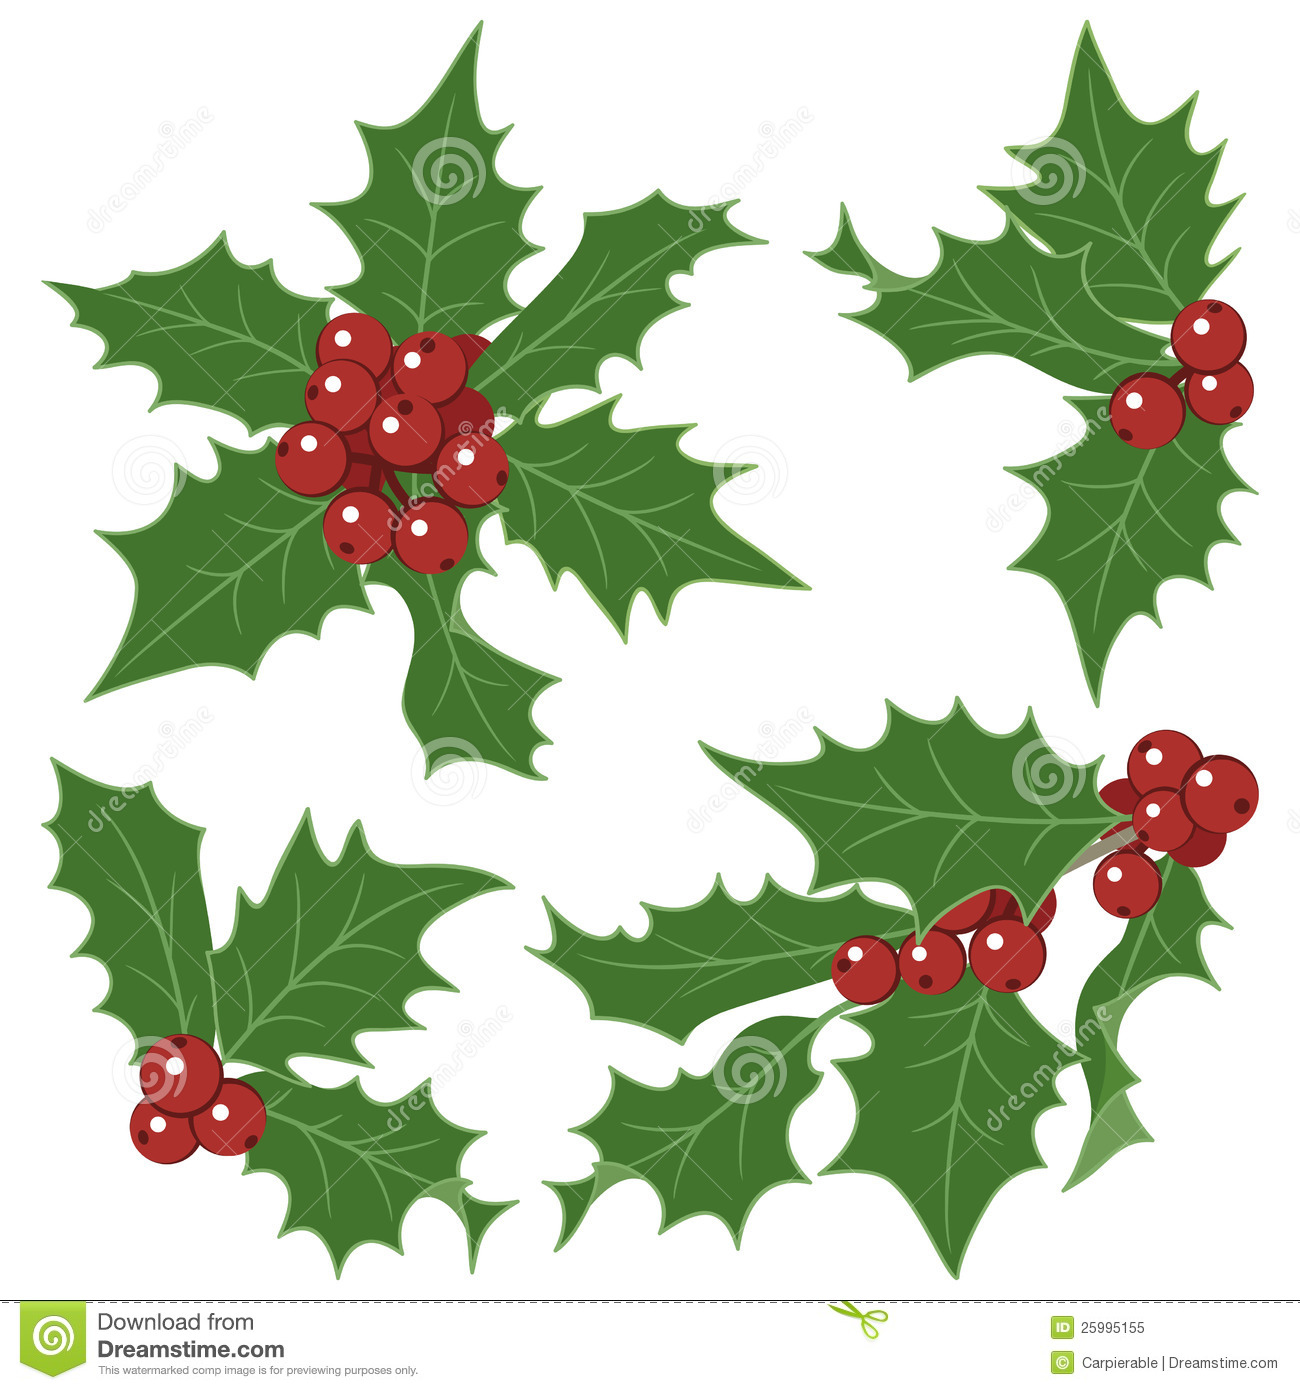 Search Results For Pictures Of Christmas Holly Berries